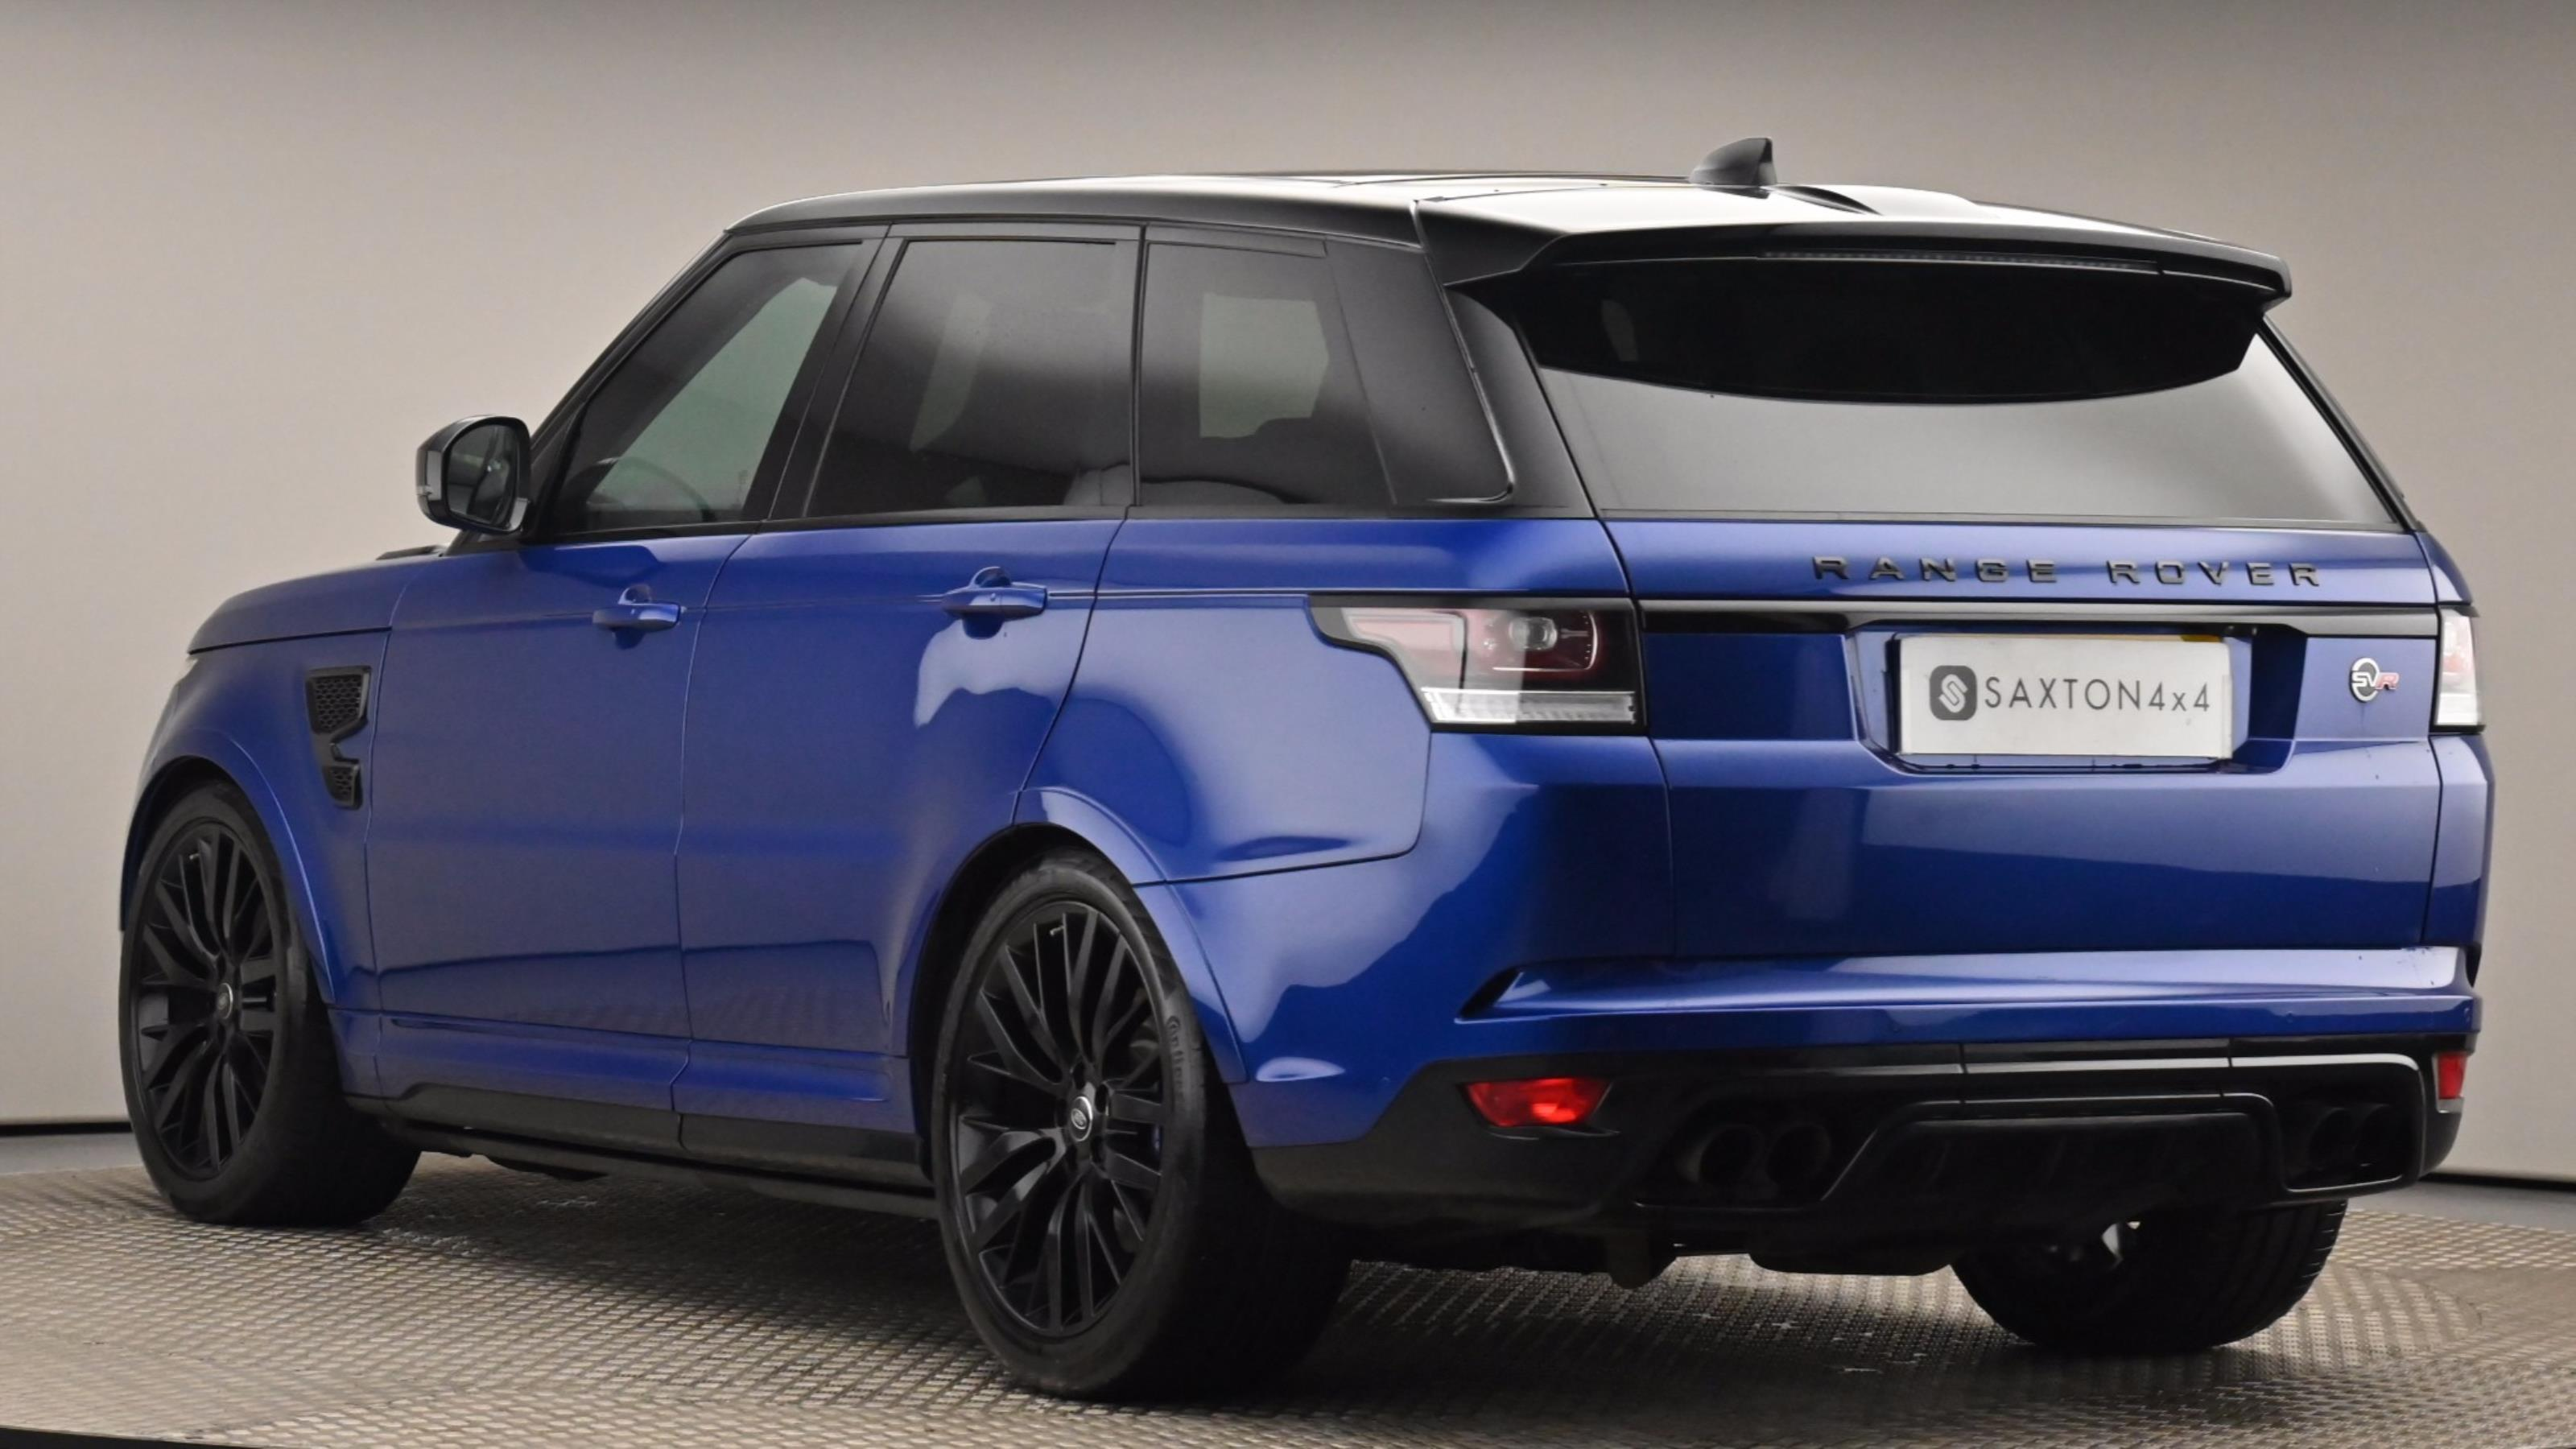 Used 2017 Land Rover RANGE ROVER SPORT 5.0 V8 S/C SVR 5dr Auto BLUE at Saxton4x4